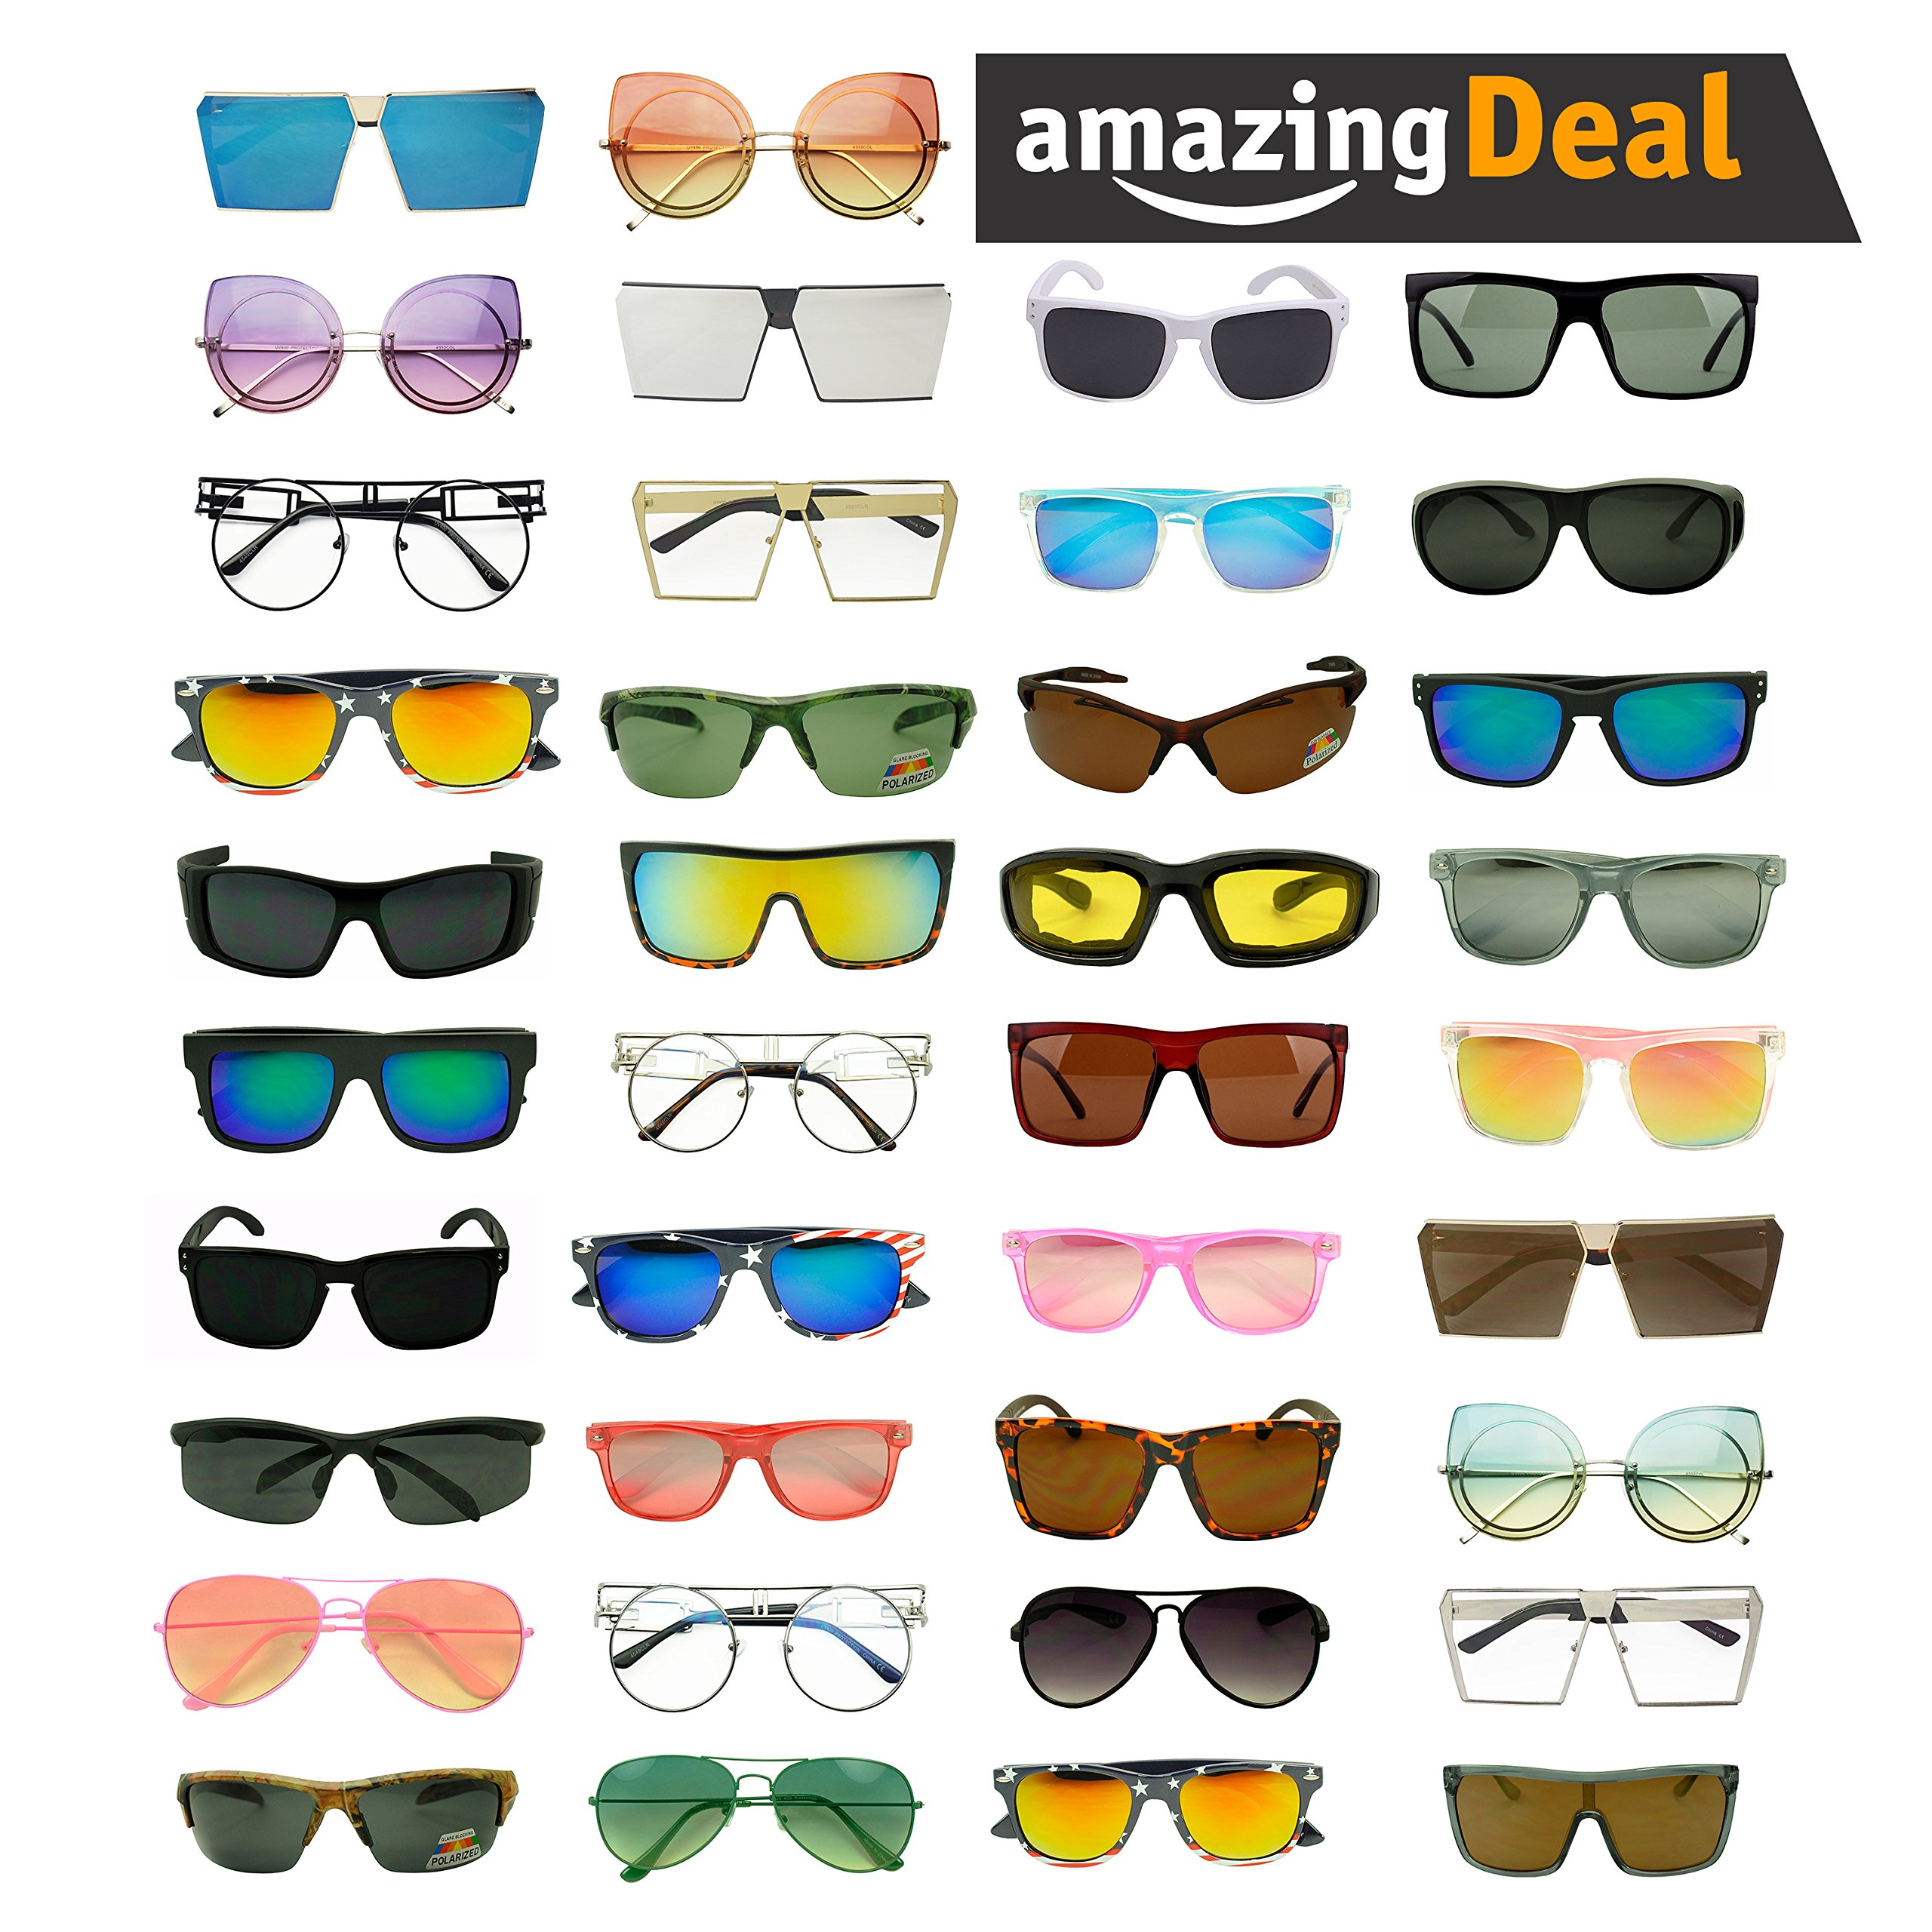 Womens LOT of 12, 25 Assorted Colors & Style Retro Classic Vintage Designer Inspired Sunglasses Wholesale Deal (Lot of 100 (Assorted), Assorted) by Sunglass Stop (Image #1)